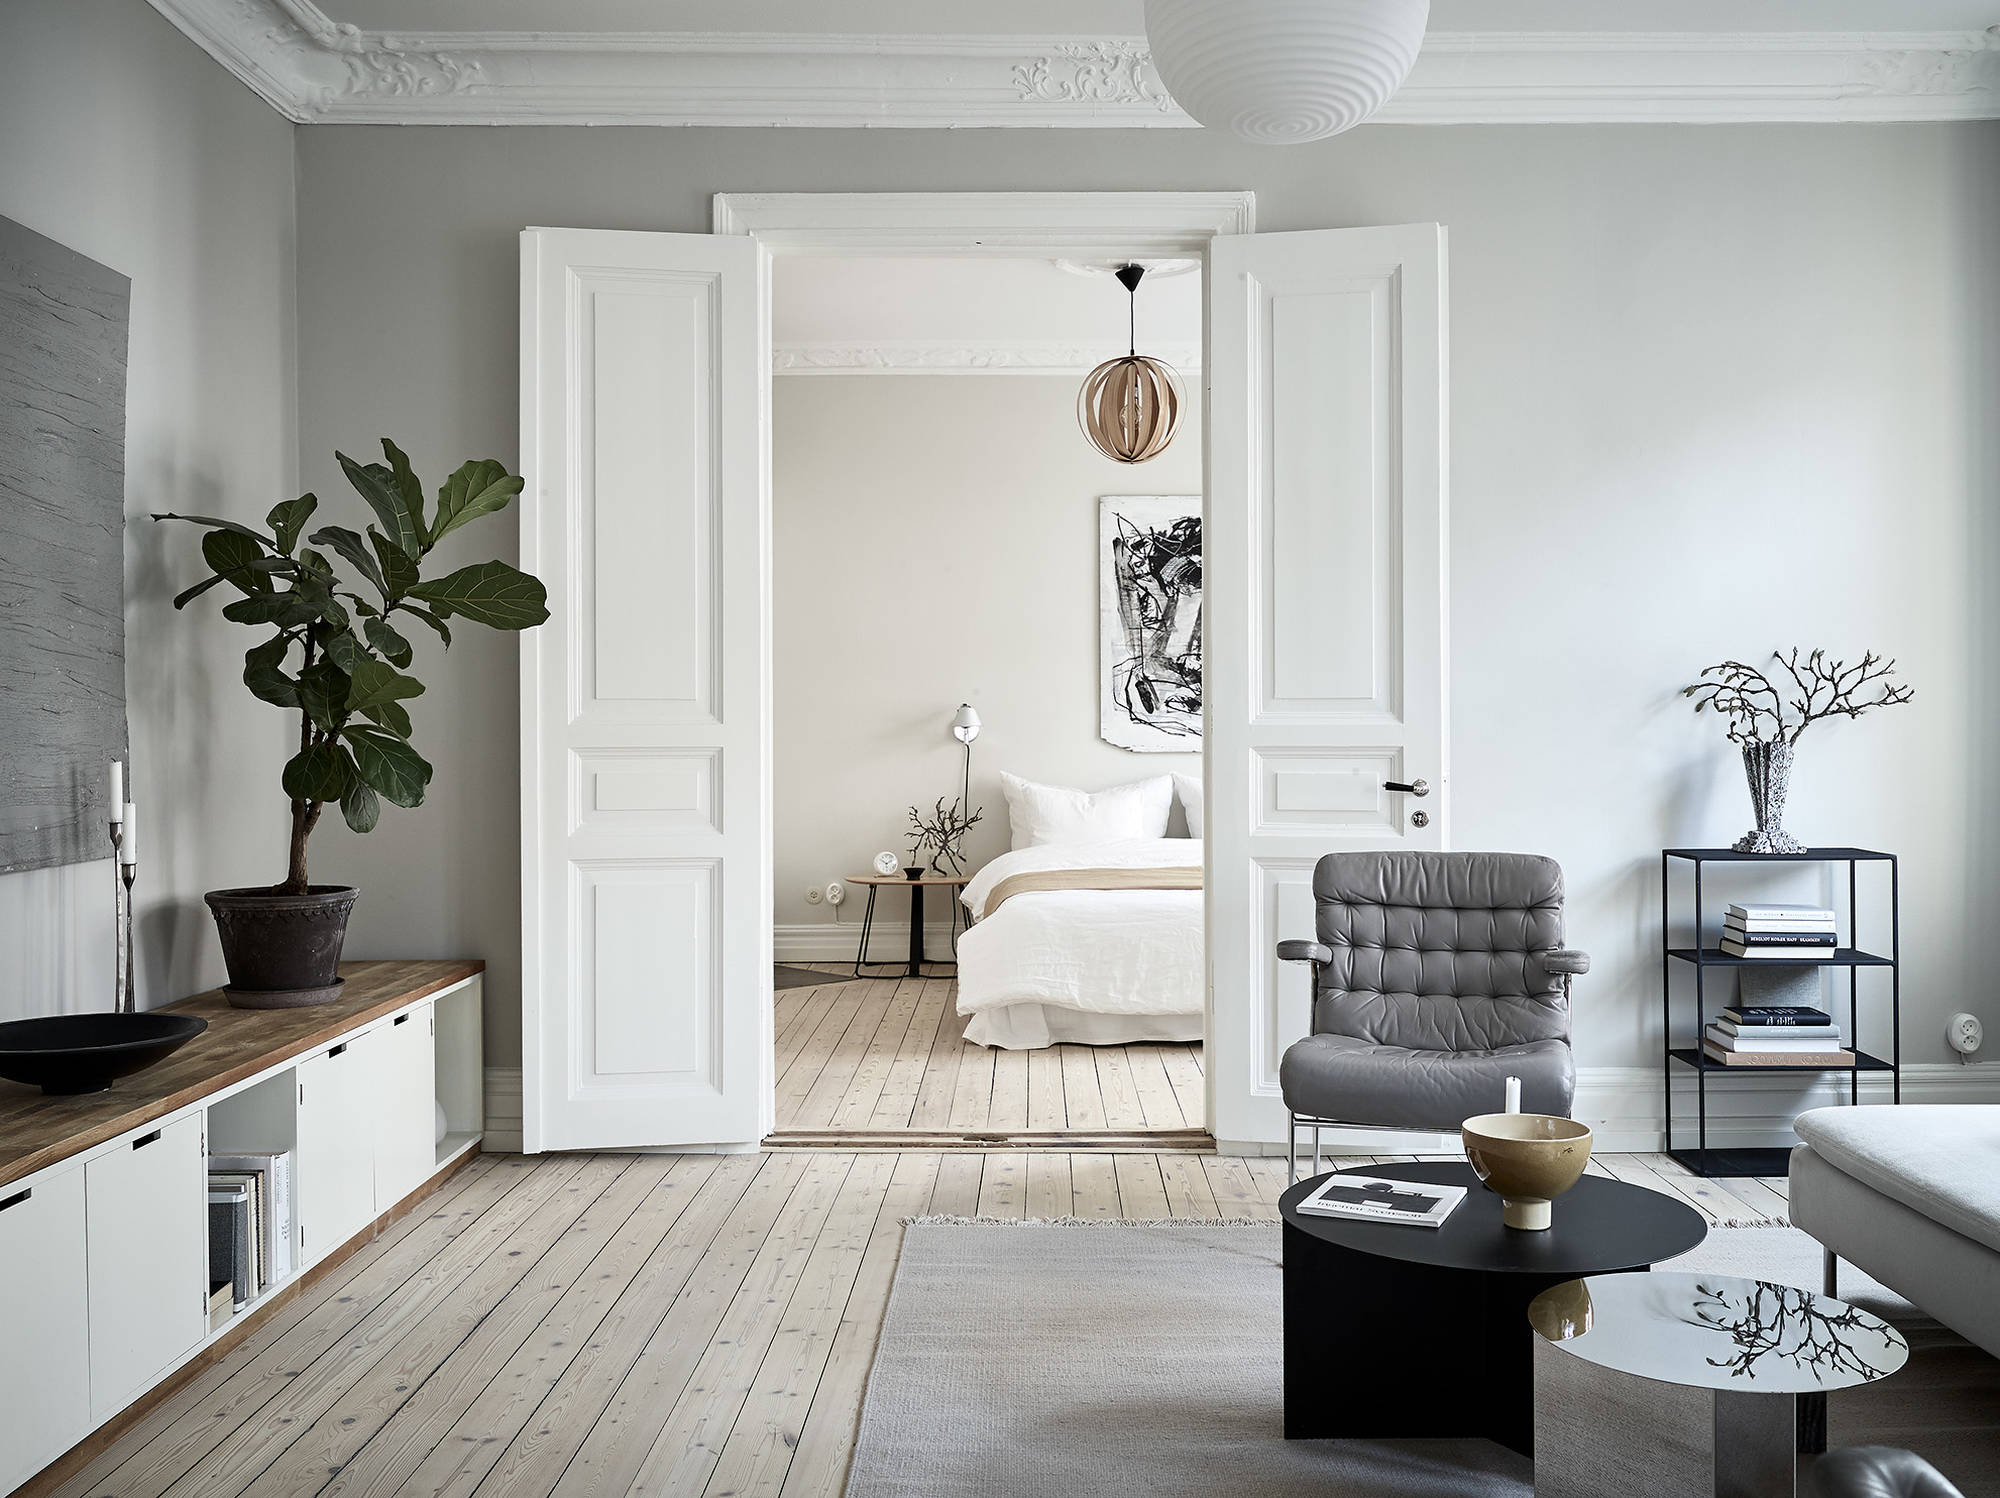 A cozy home with greige walls - COCO LAPINE DESIGNCOCO LAPINE DESIGN